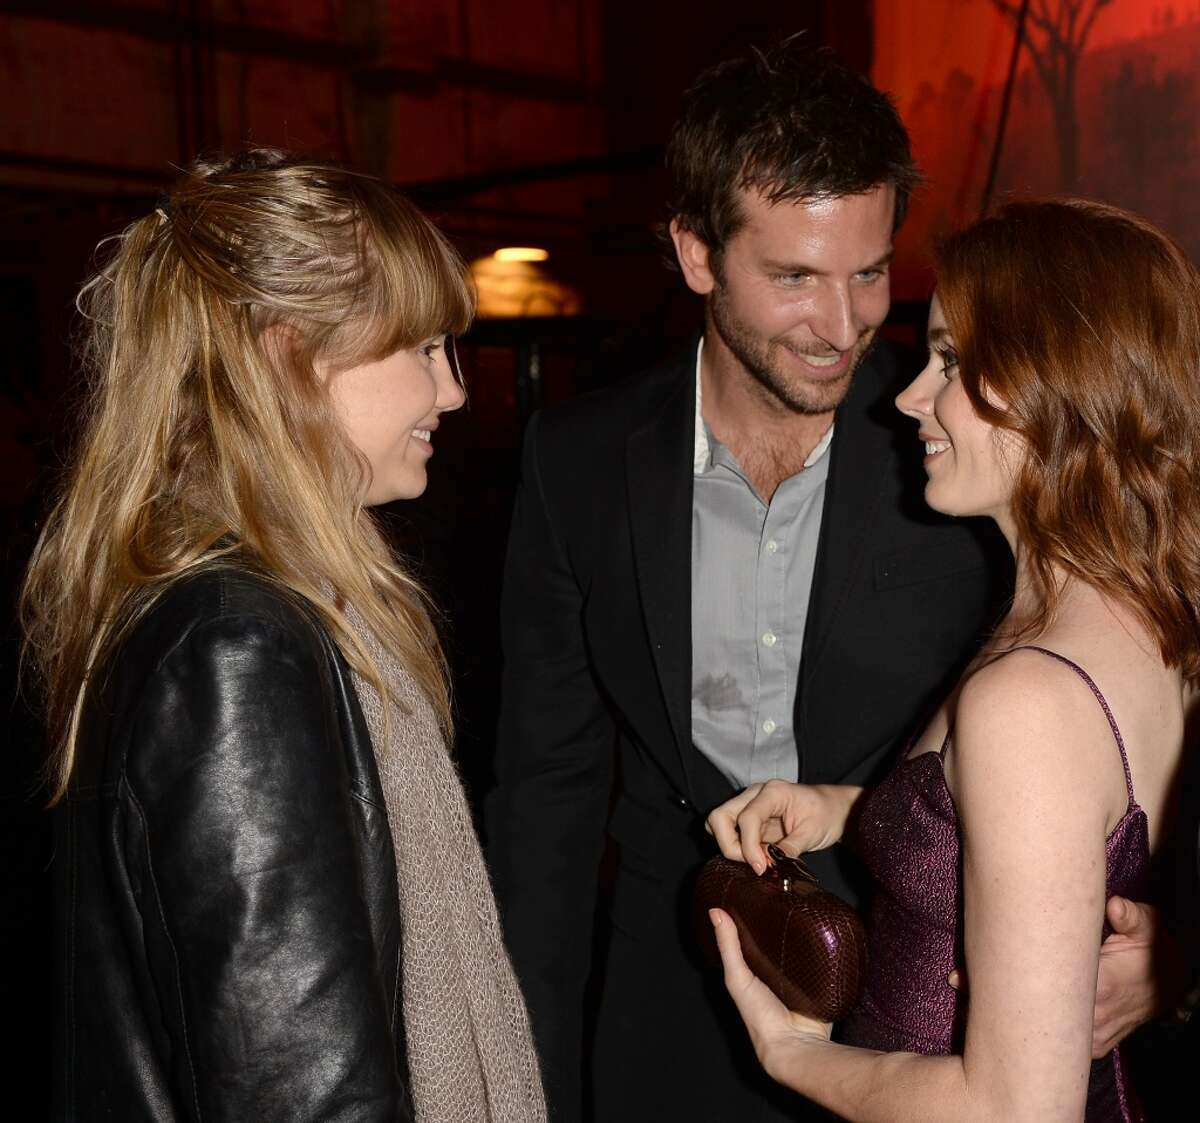 CULVER CITY, CA - JUNE 08: (L-R) Model Suki Waterhouse and actors Bradley Cooper and Amy Adams attend Spike TV's Guys Choice 2013 at Sony Pictures Studios on June 8, 2013 in Culver City, California. (Photo by Jason Merritt/Getty Images for Spike TV)